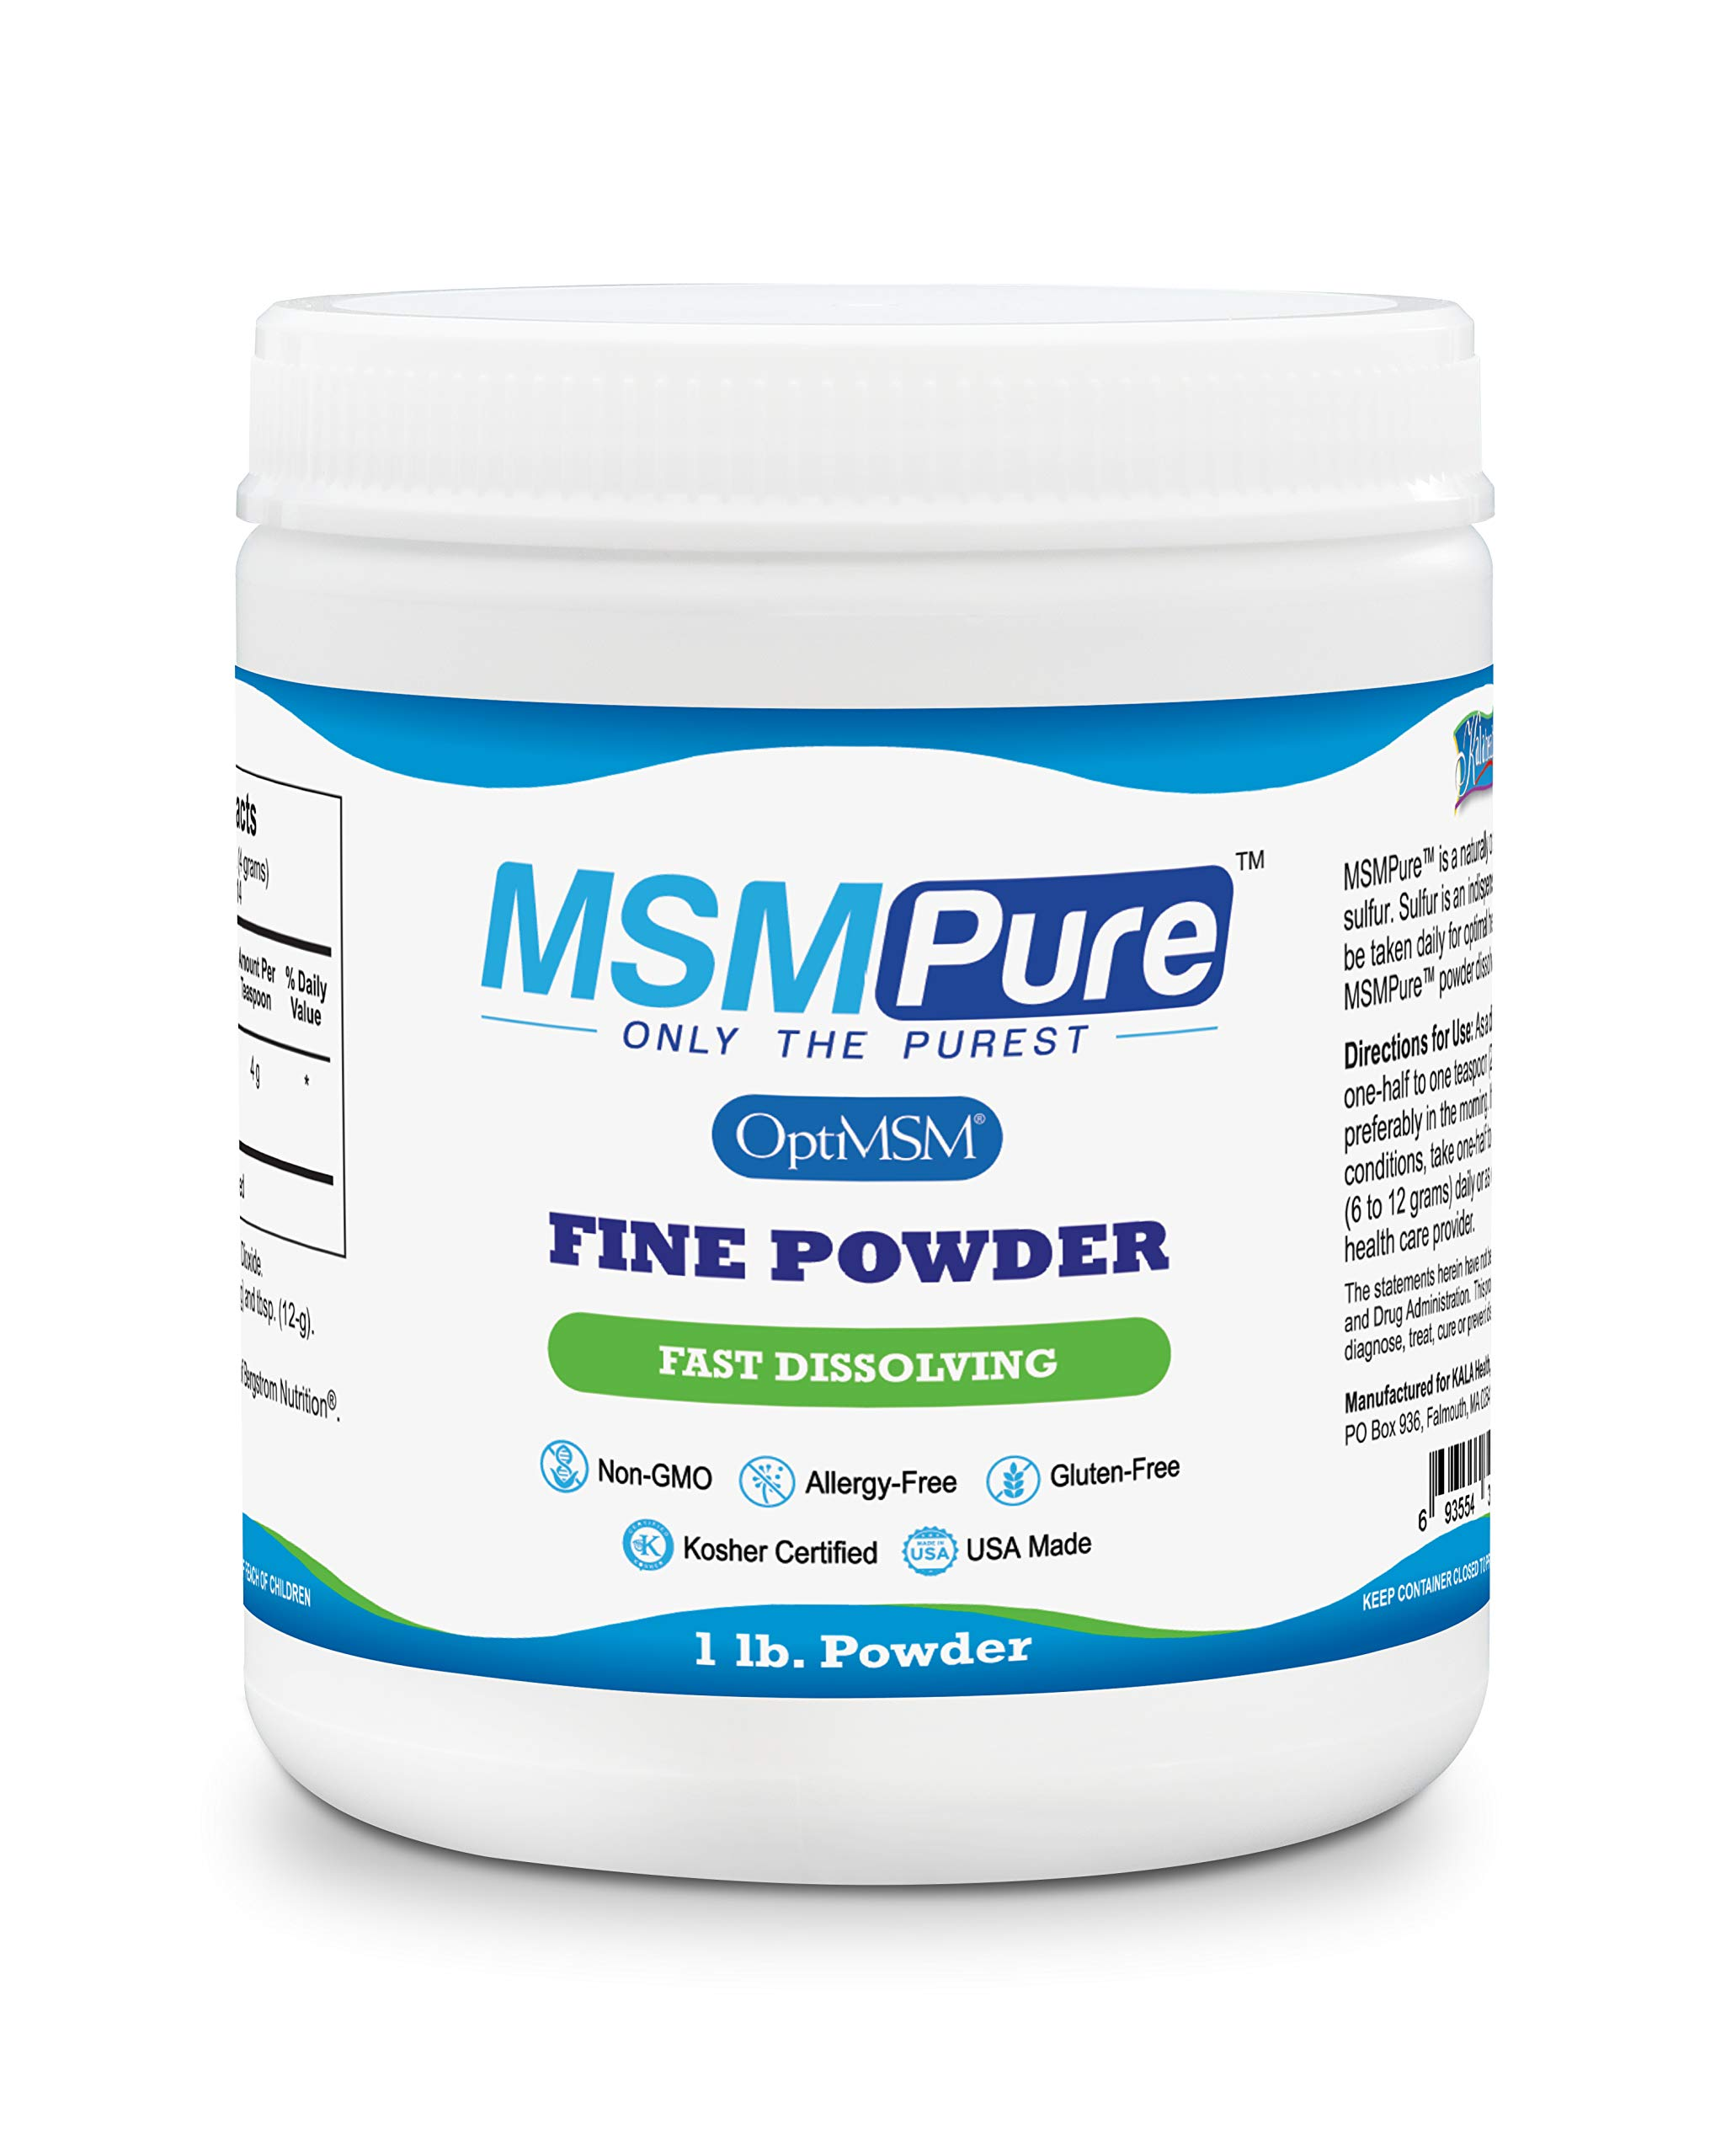 Kala Health MSMPure Fine Powder, Fast Dissolving Organic Sulfur Crystals, 99% Pure Distilled MSM Supplement, Made in USA, 1 lb by Kala Health